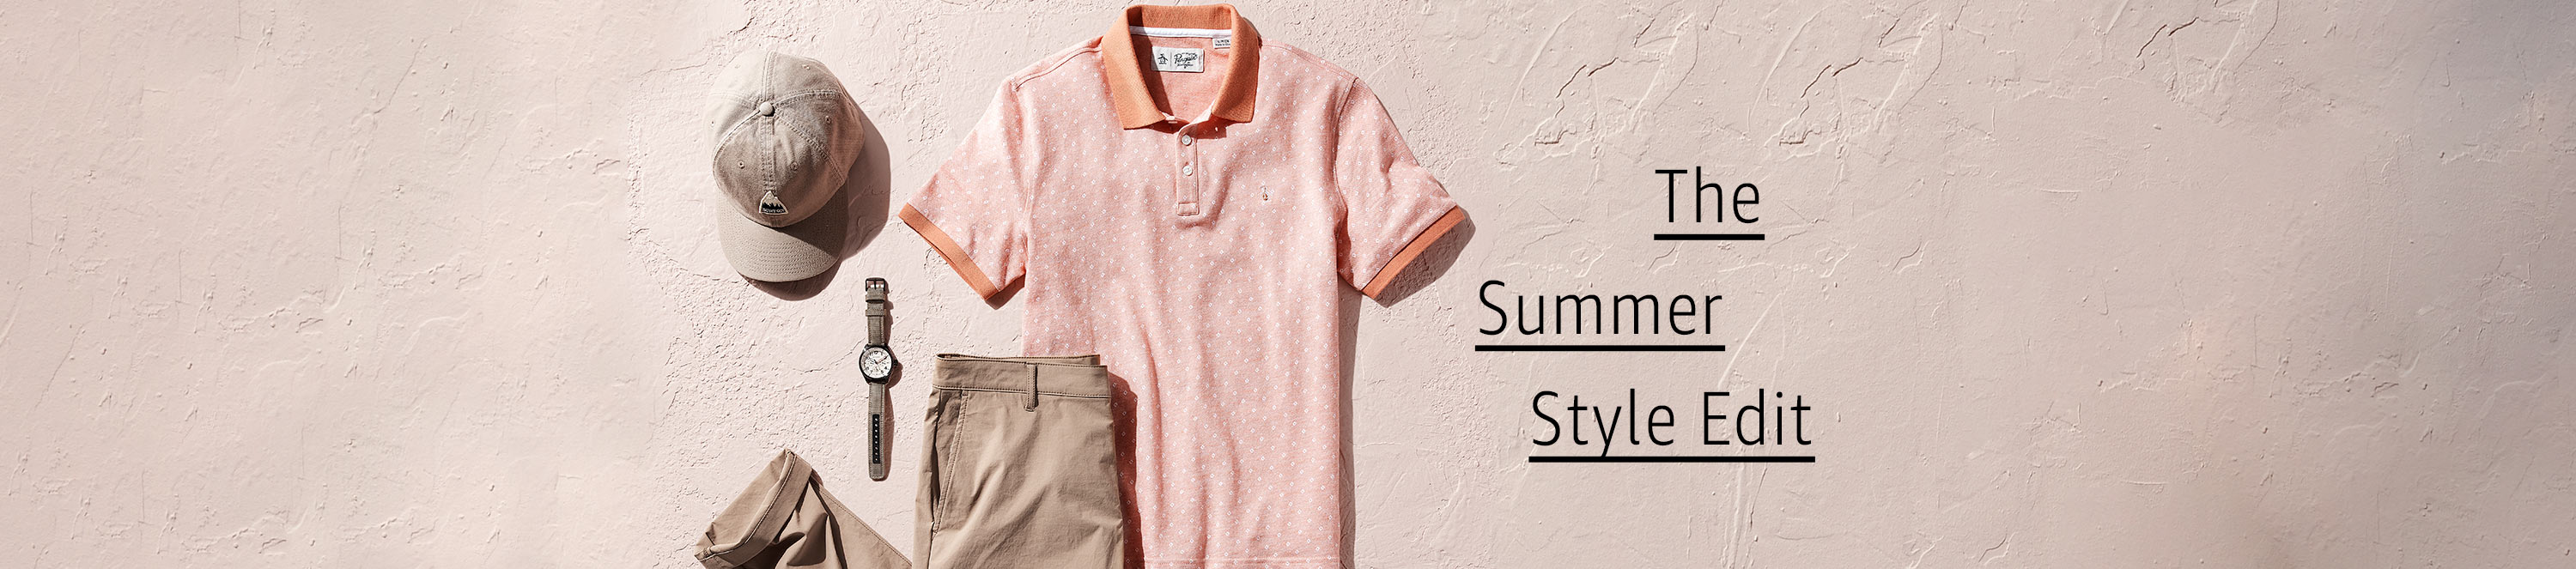 The summer style edit